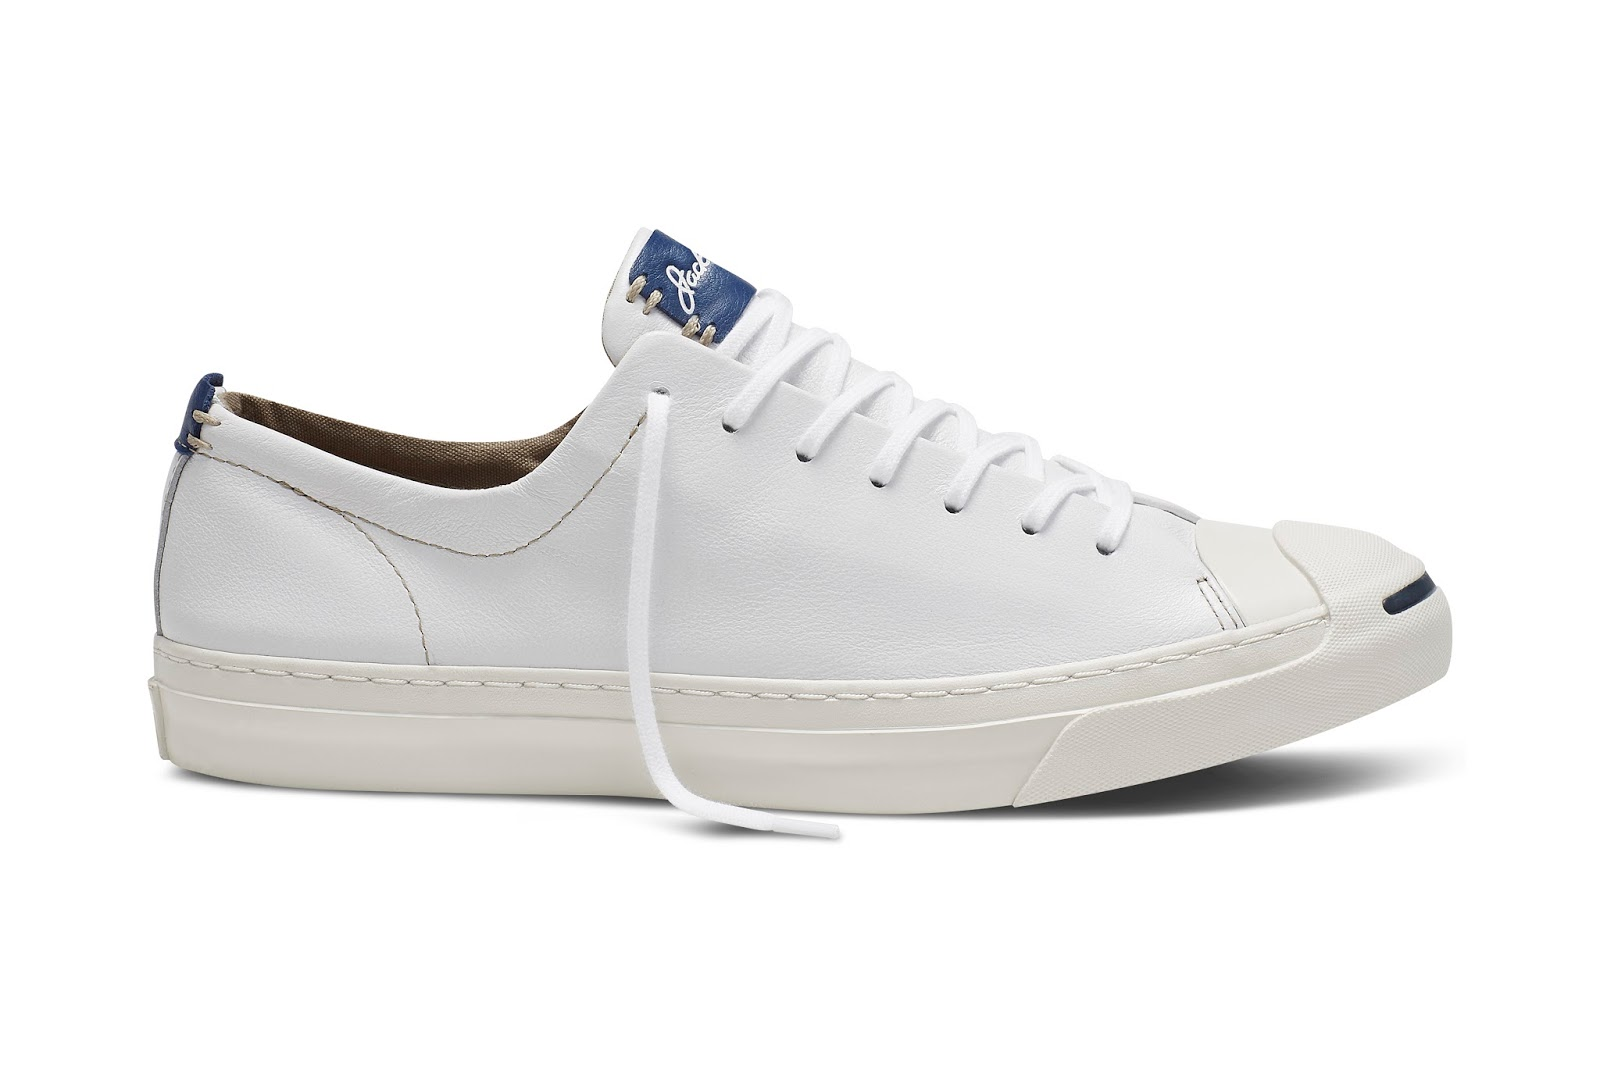 c755c3f39d31 ... leather upper with details including a post-applied Jack Purcell logo  on the tongueand punched eyelets for a smooth quality finish.